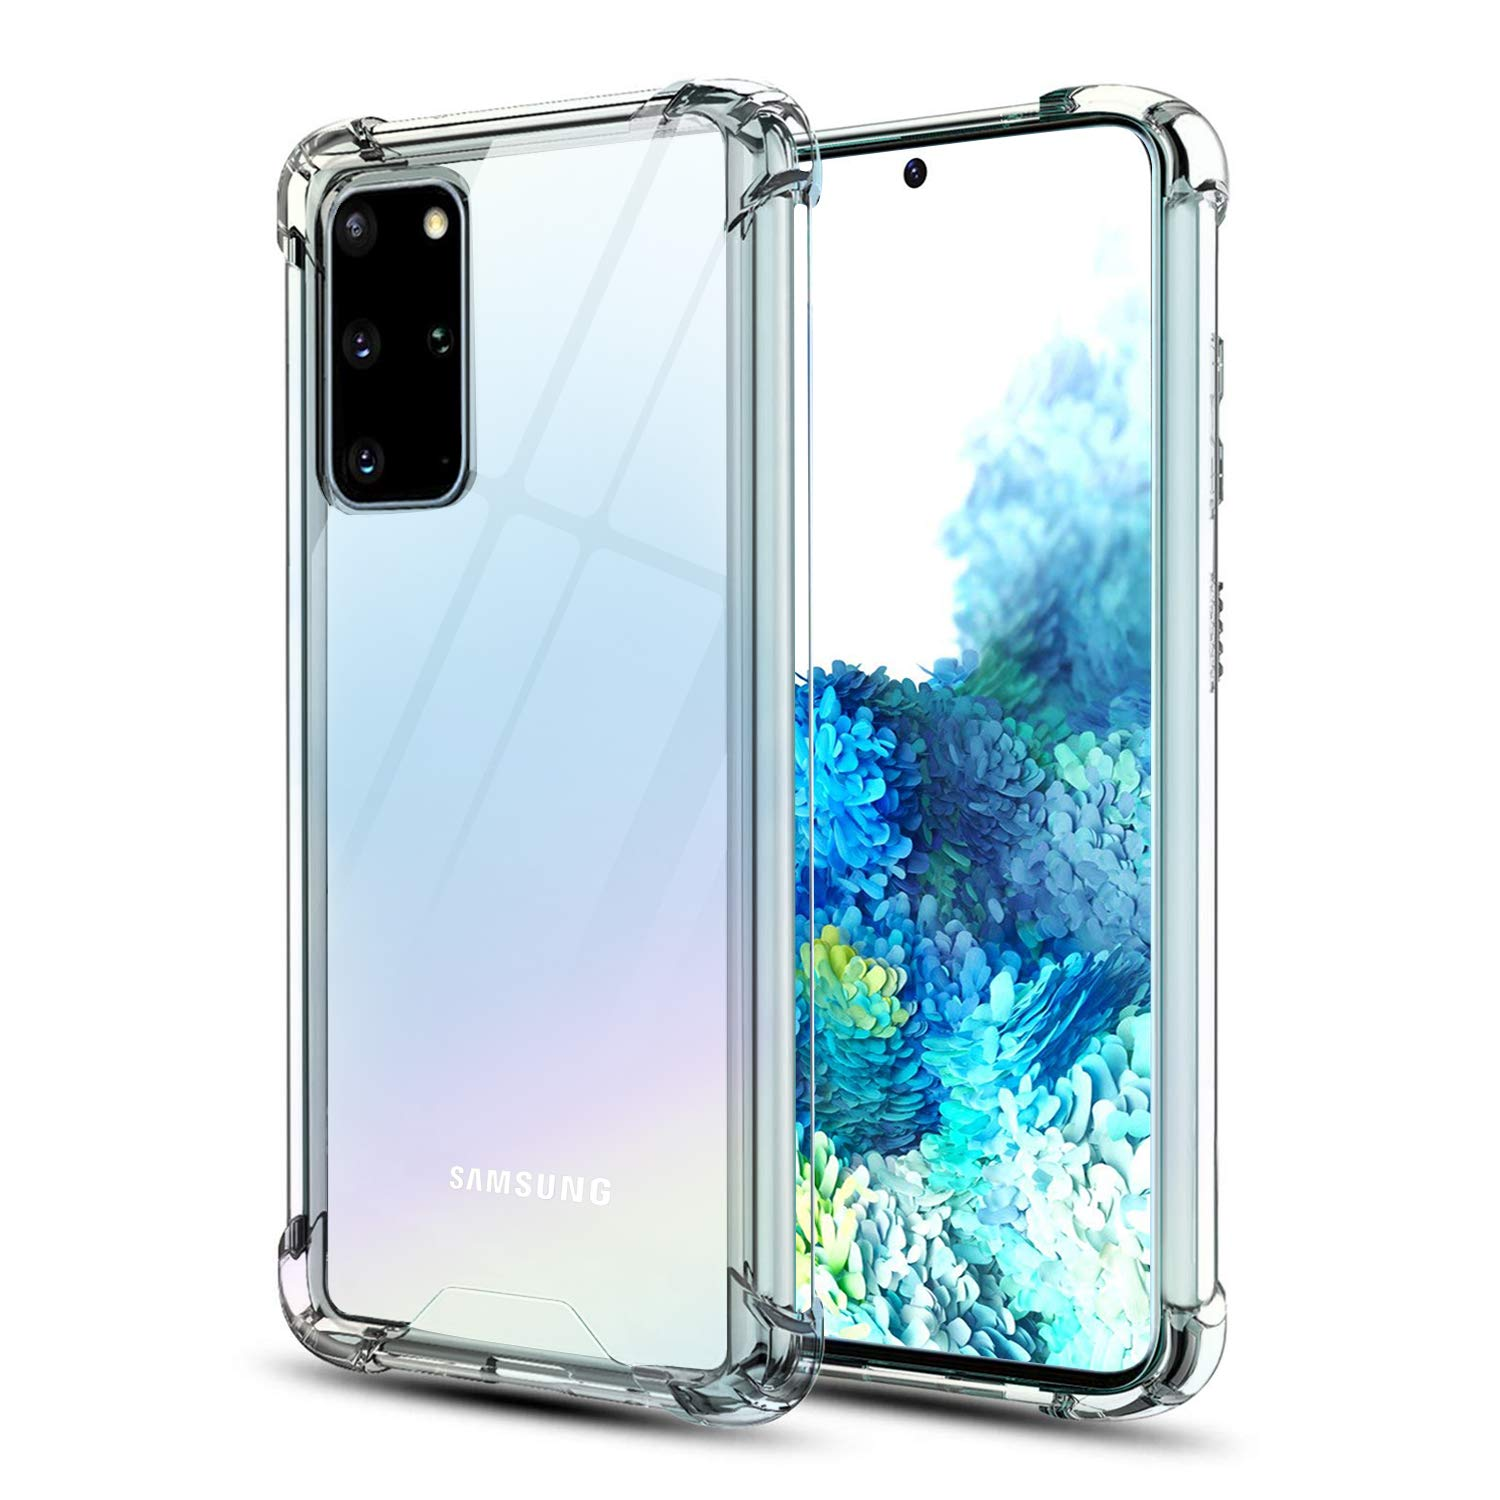 OTBBA Samsung Galaxy S20 Plus Case, Clear Slim Cases with Soft TPU Anti-Yellow/Scratch/Reinforced Corner Protection Cover for Galaxy S20+ (6.7inch)